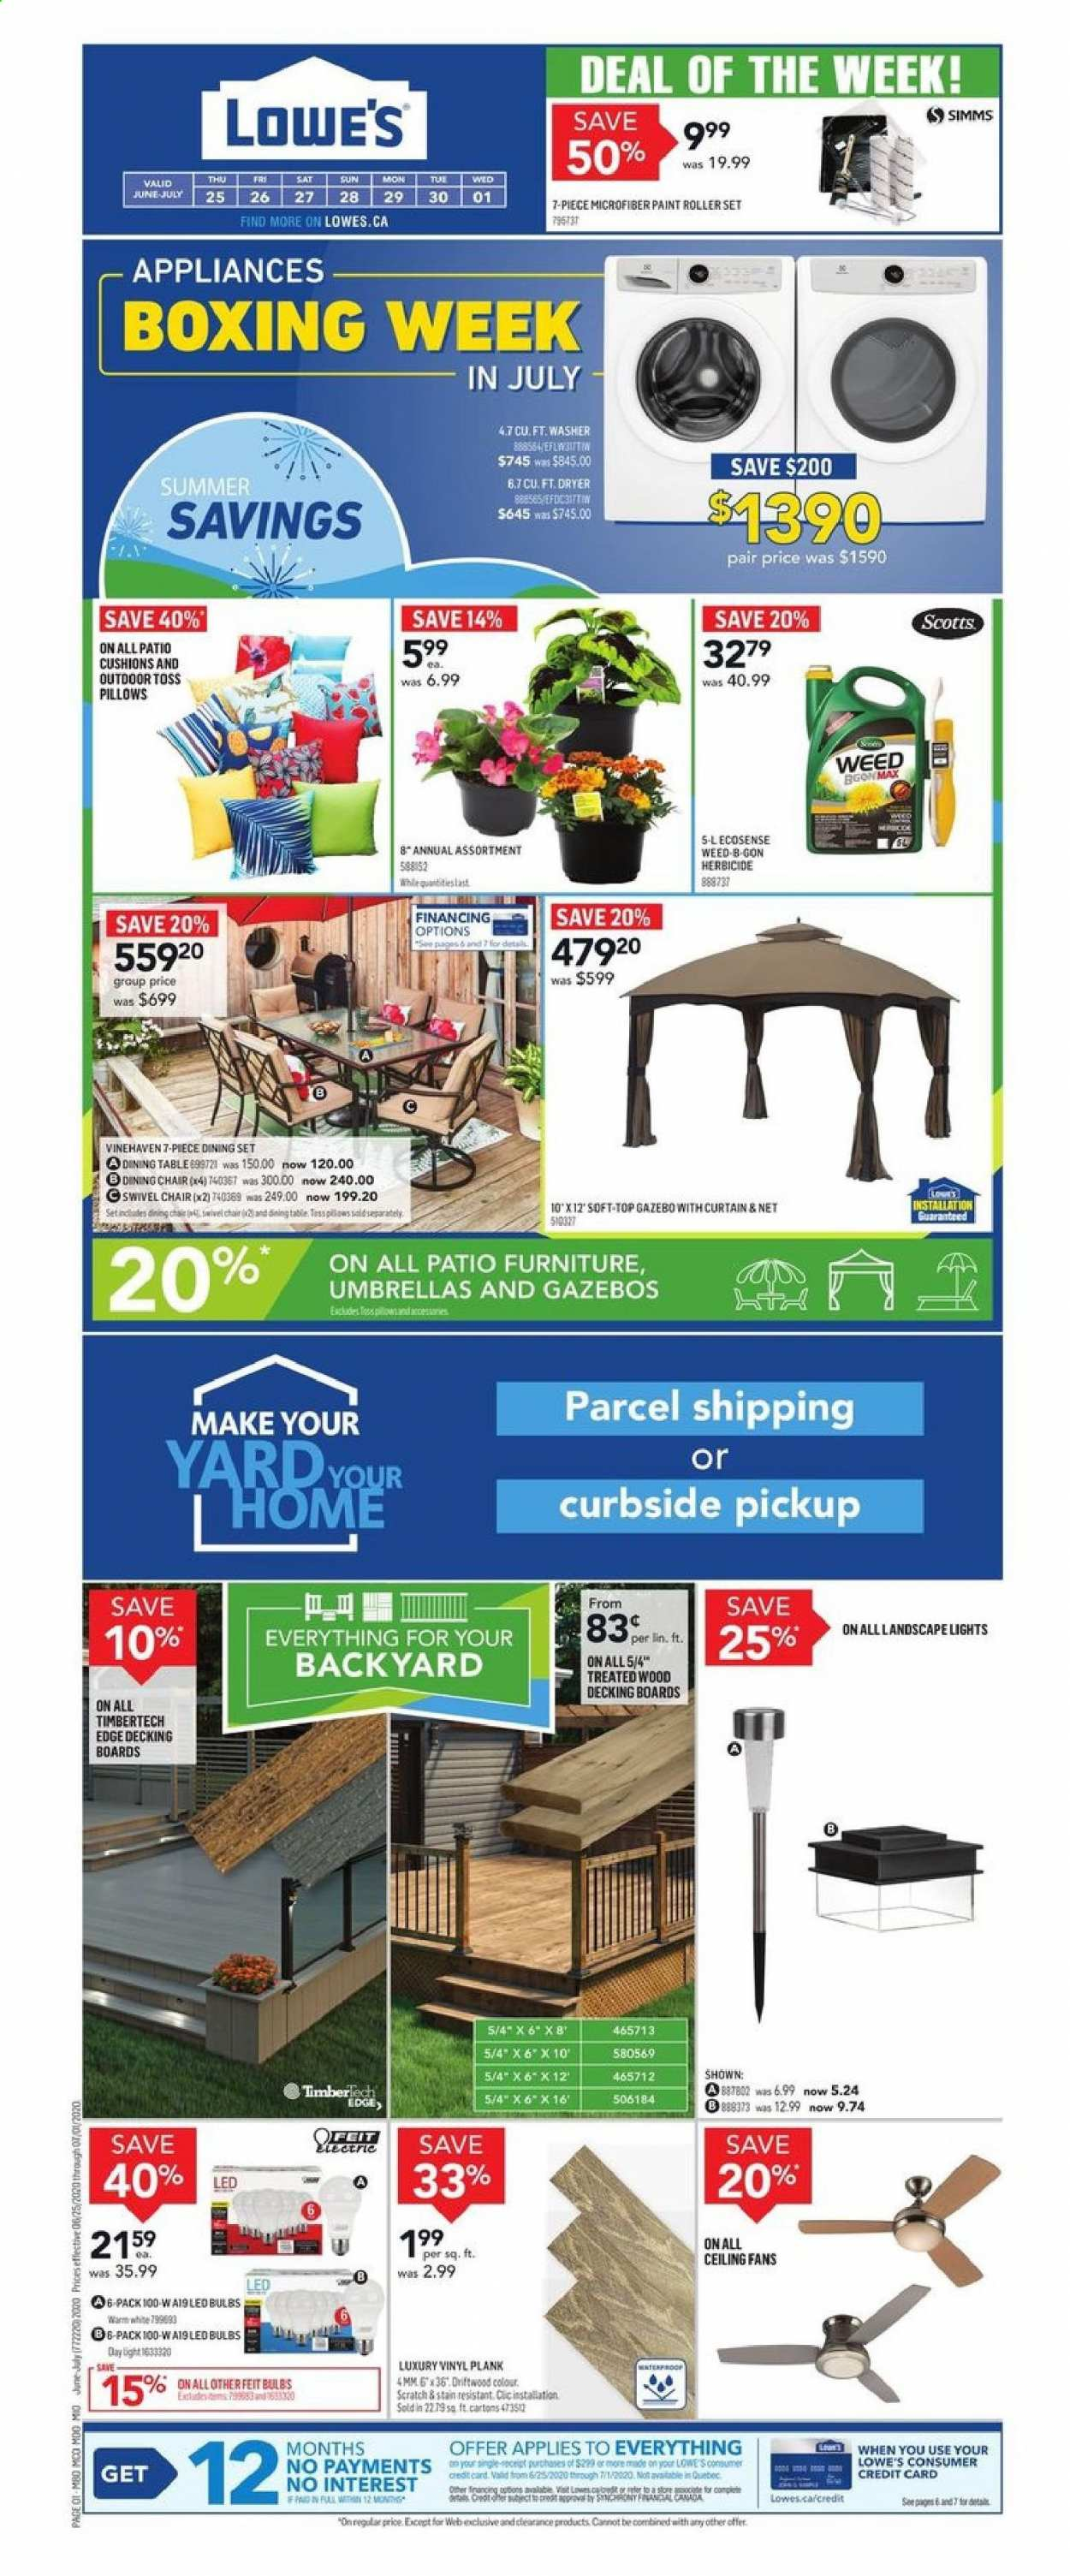 Lowe's Flyer  - June 25, 2020 - July 01, 2020. Page 1.